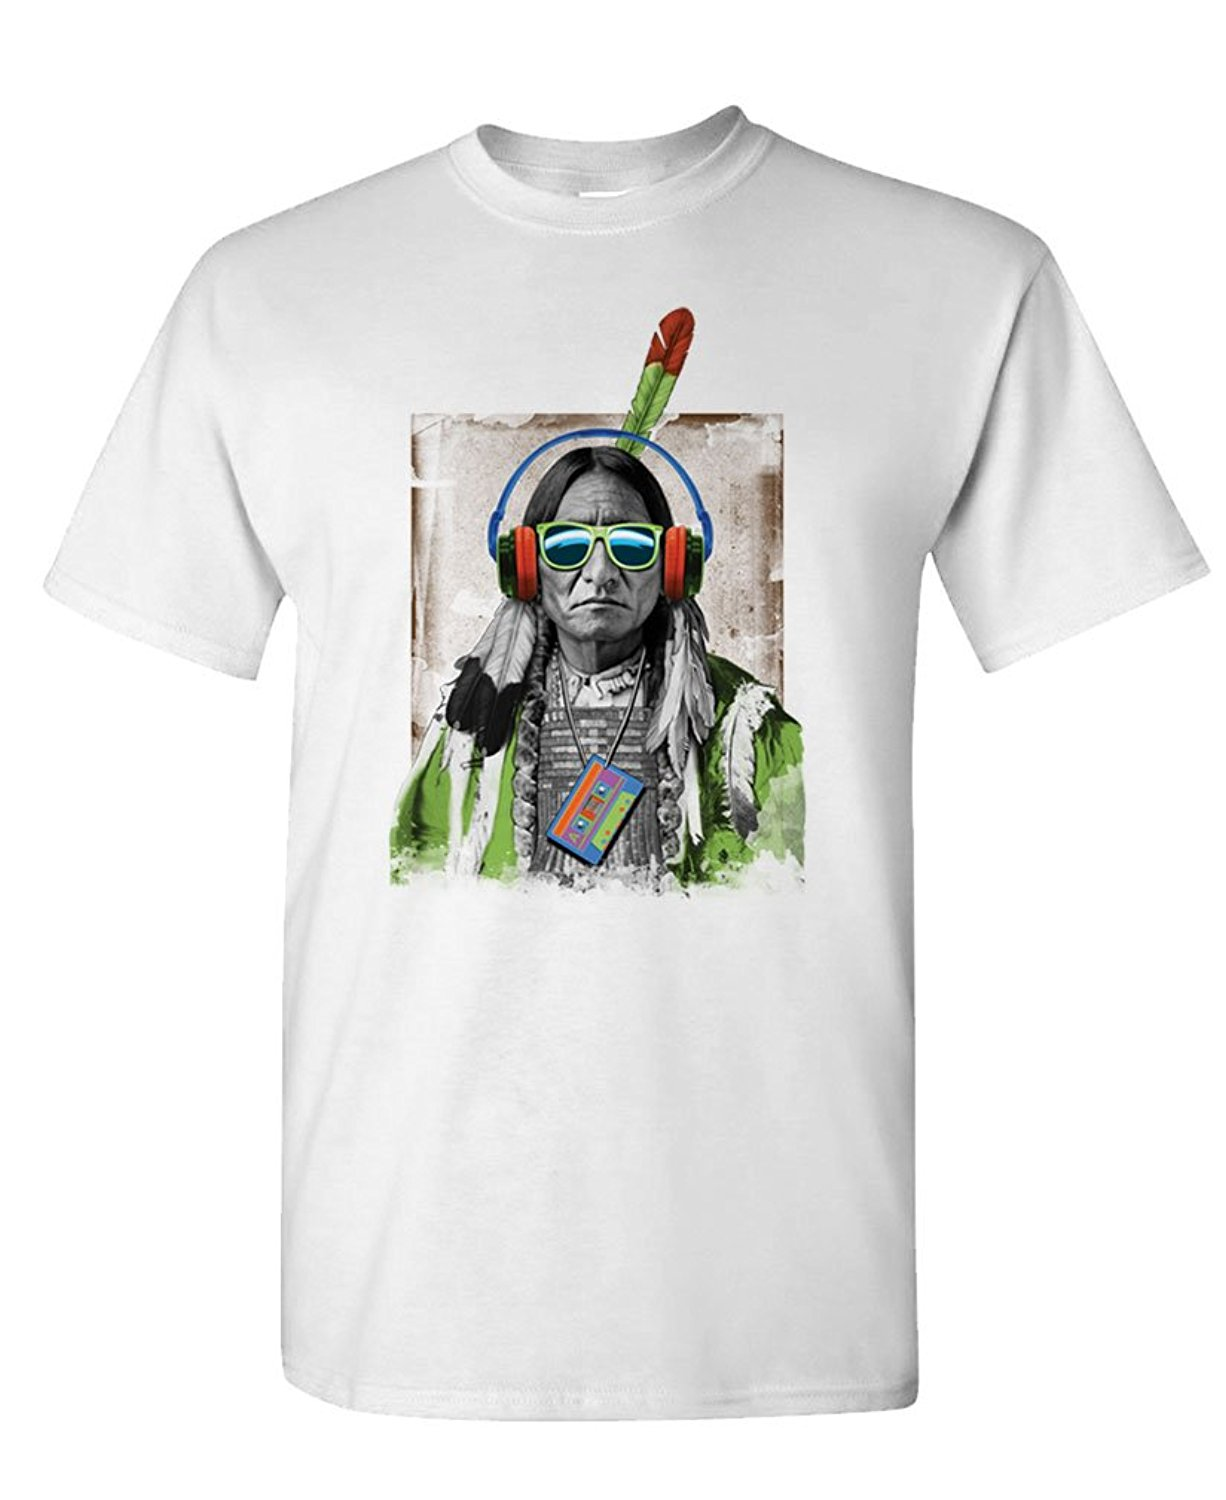 Printed T Shirts Men'S Short Sleeve Native Headphones American Indian Hippy Short Crew Neck T Shirts